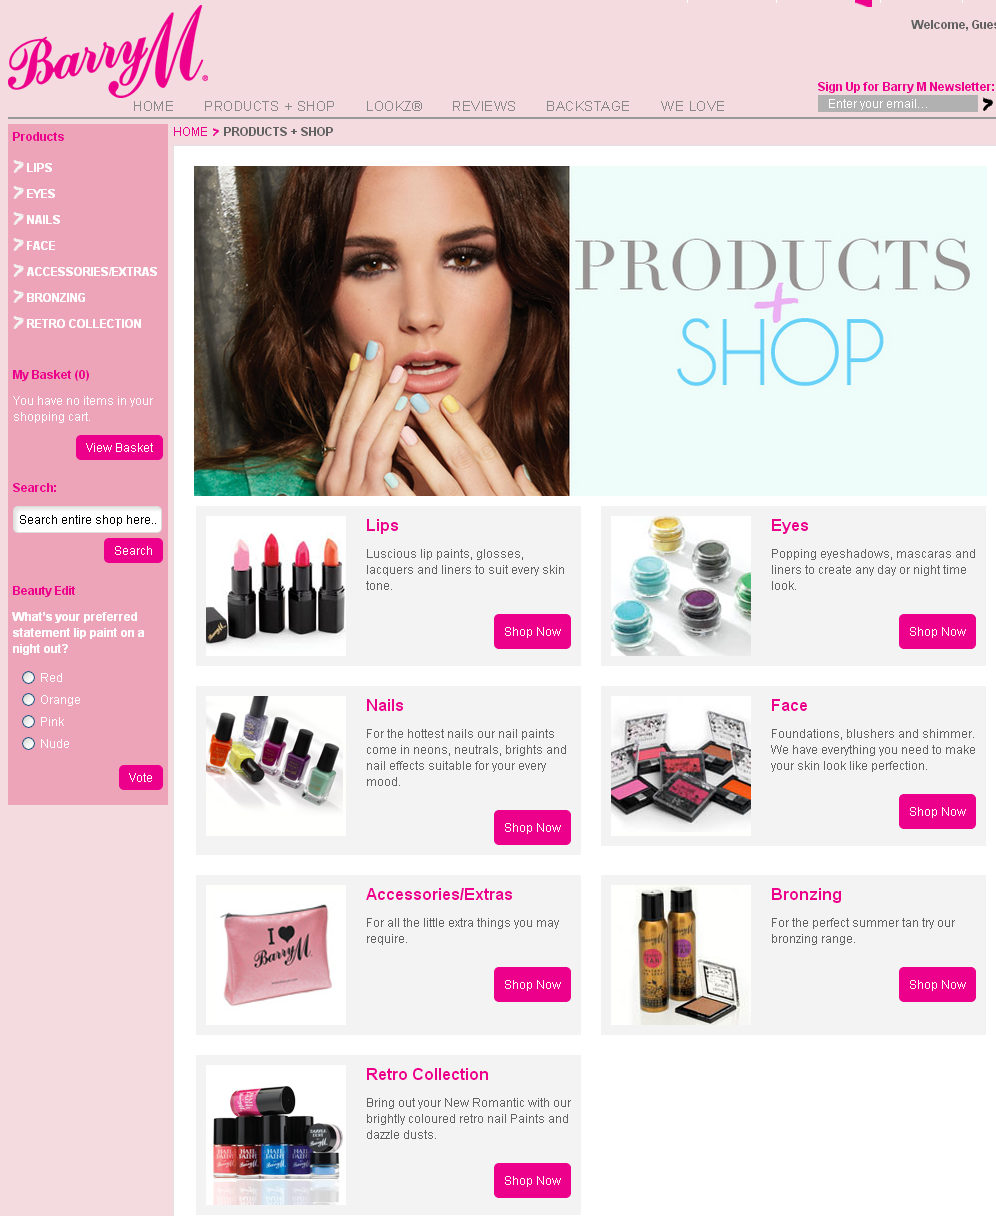 Products + Shop